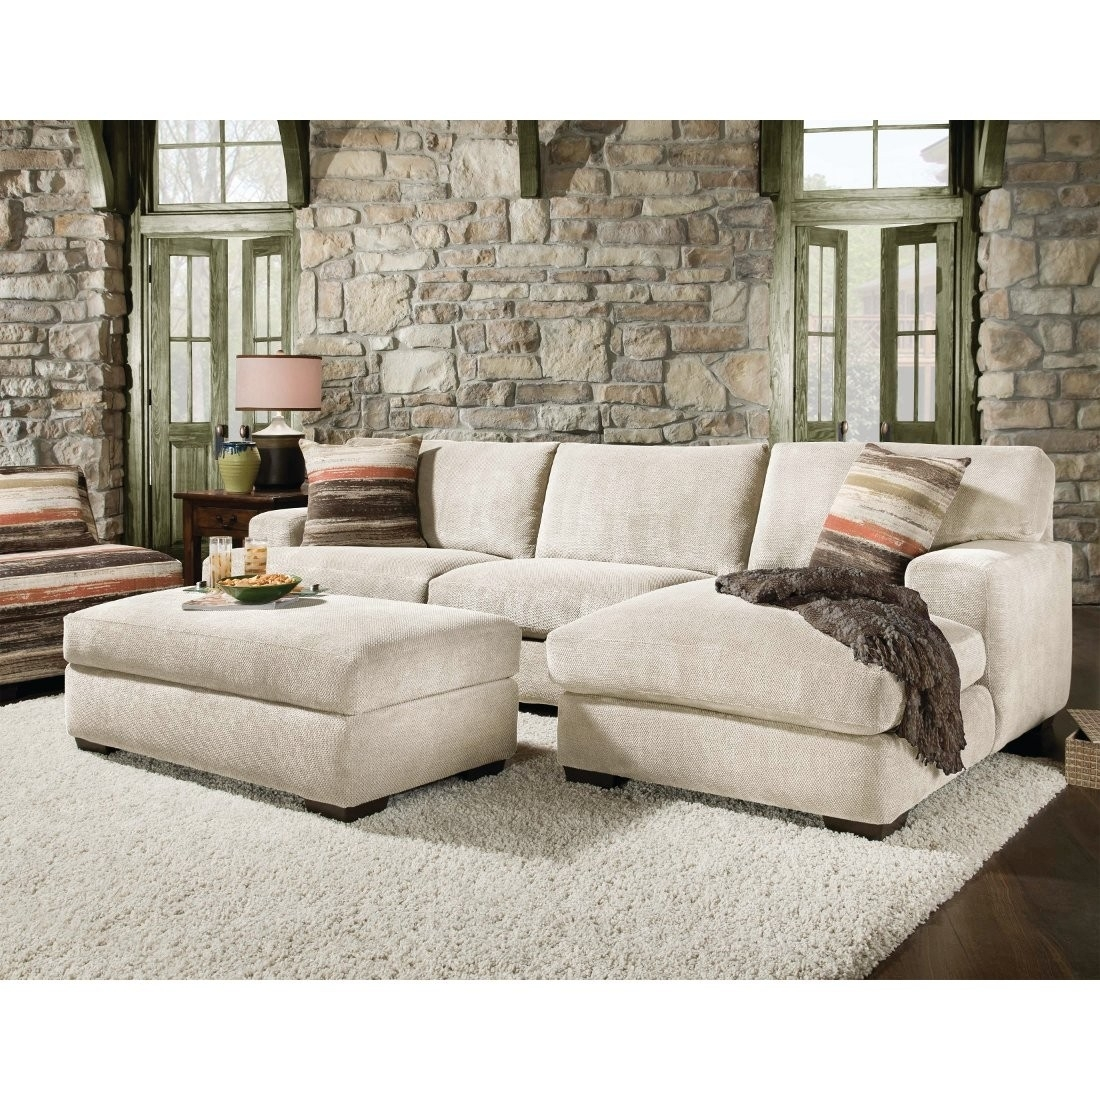 Couch With Large Ottoman - Mogams with Sectional Couches With Large Ottoman (Image 7 of 15)